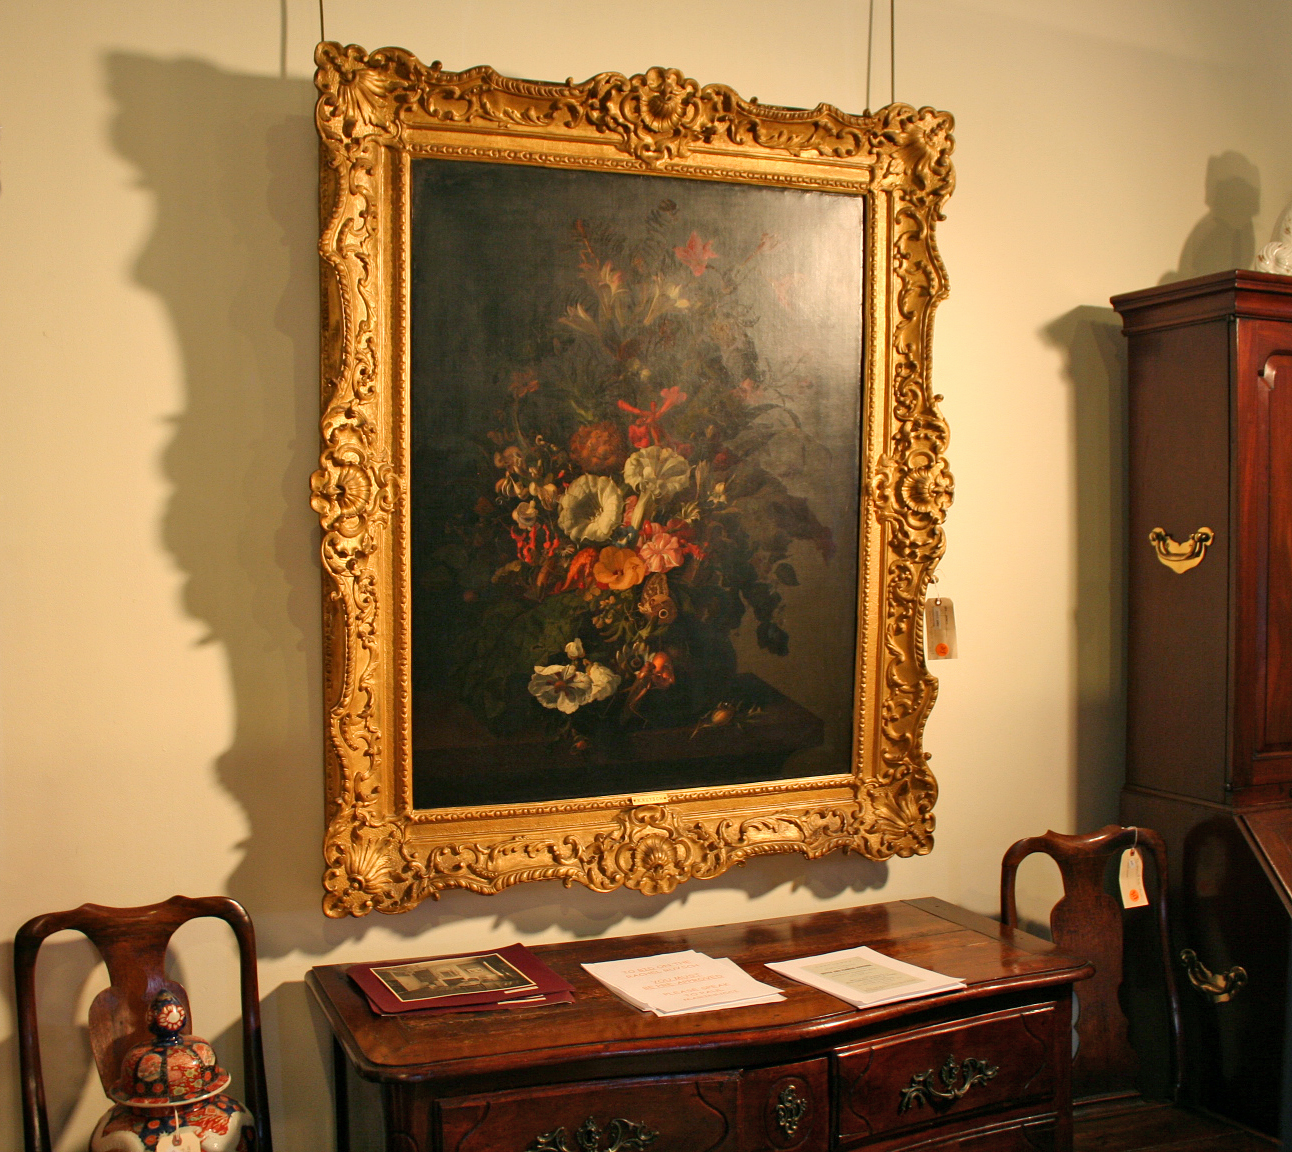 The Rachel Ruysch still life which sold for $2,040,000 (a new world record for the artist), as it hung on auction day.